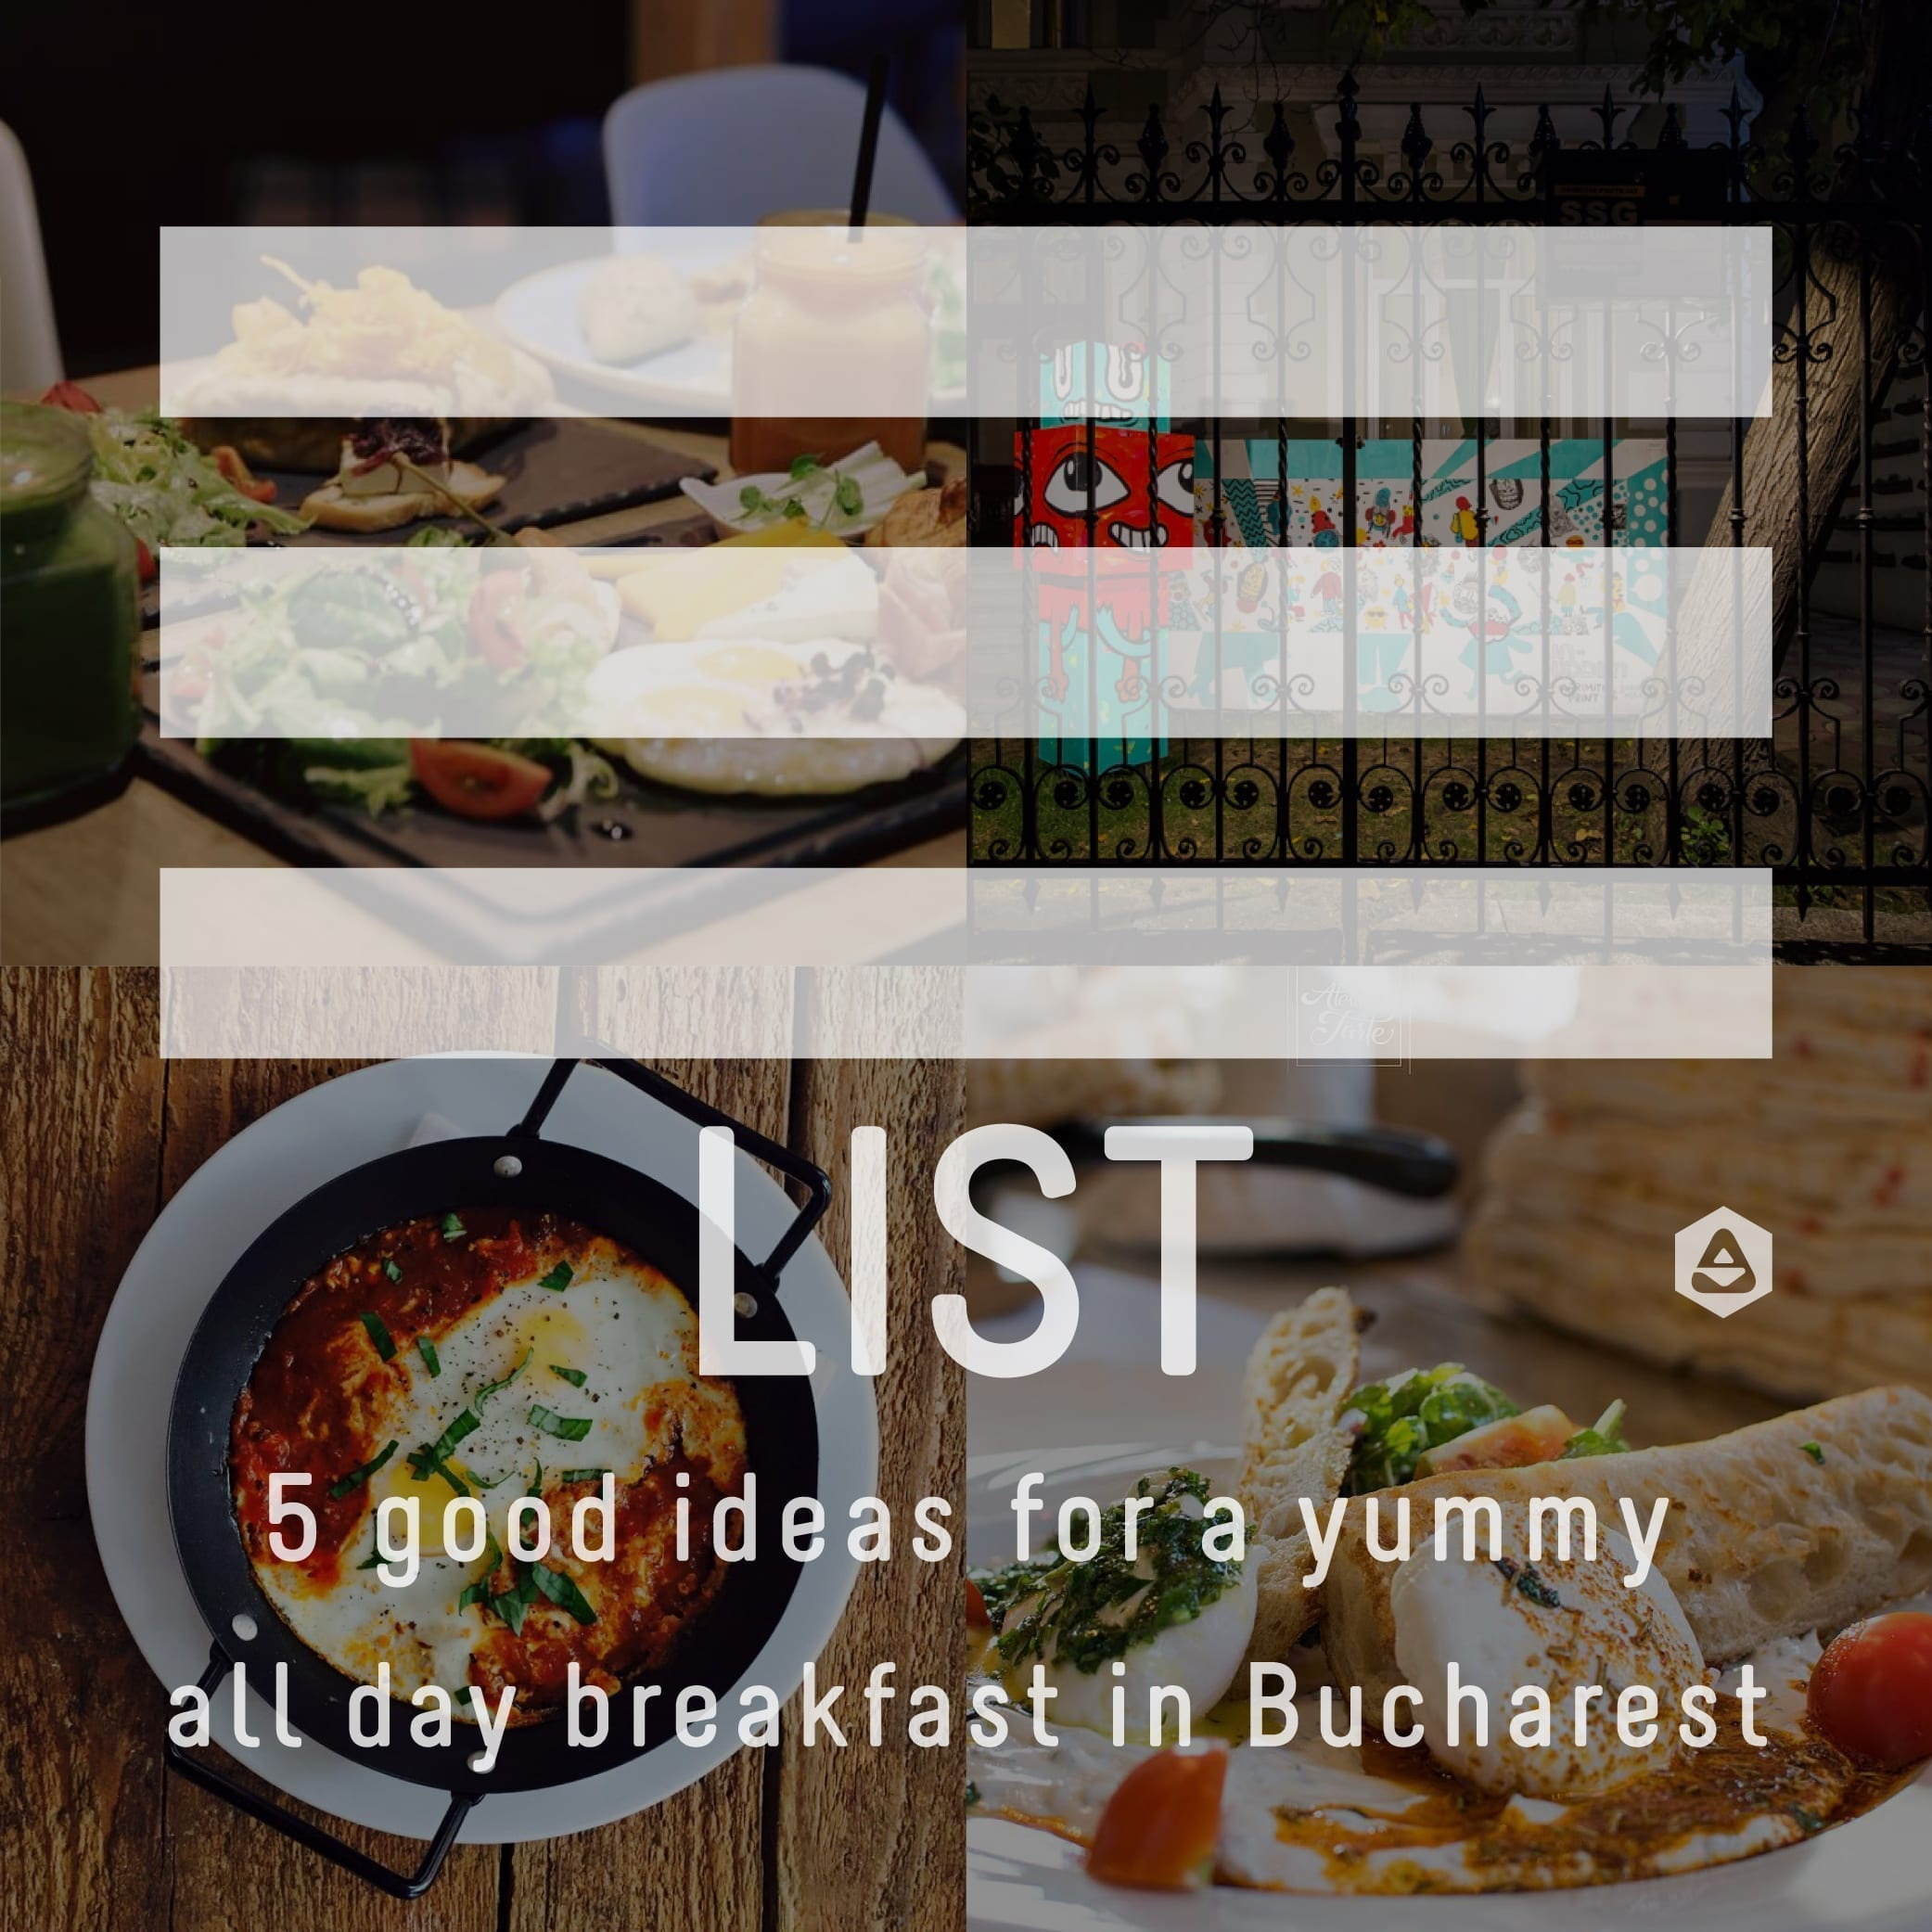 LIST: 5 good ideas for a yummy all day breakfast in Bucharest